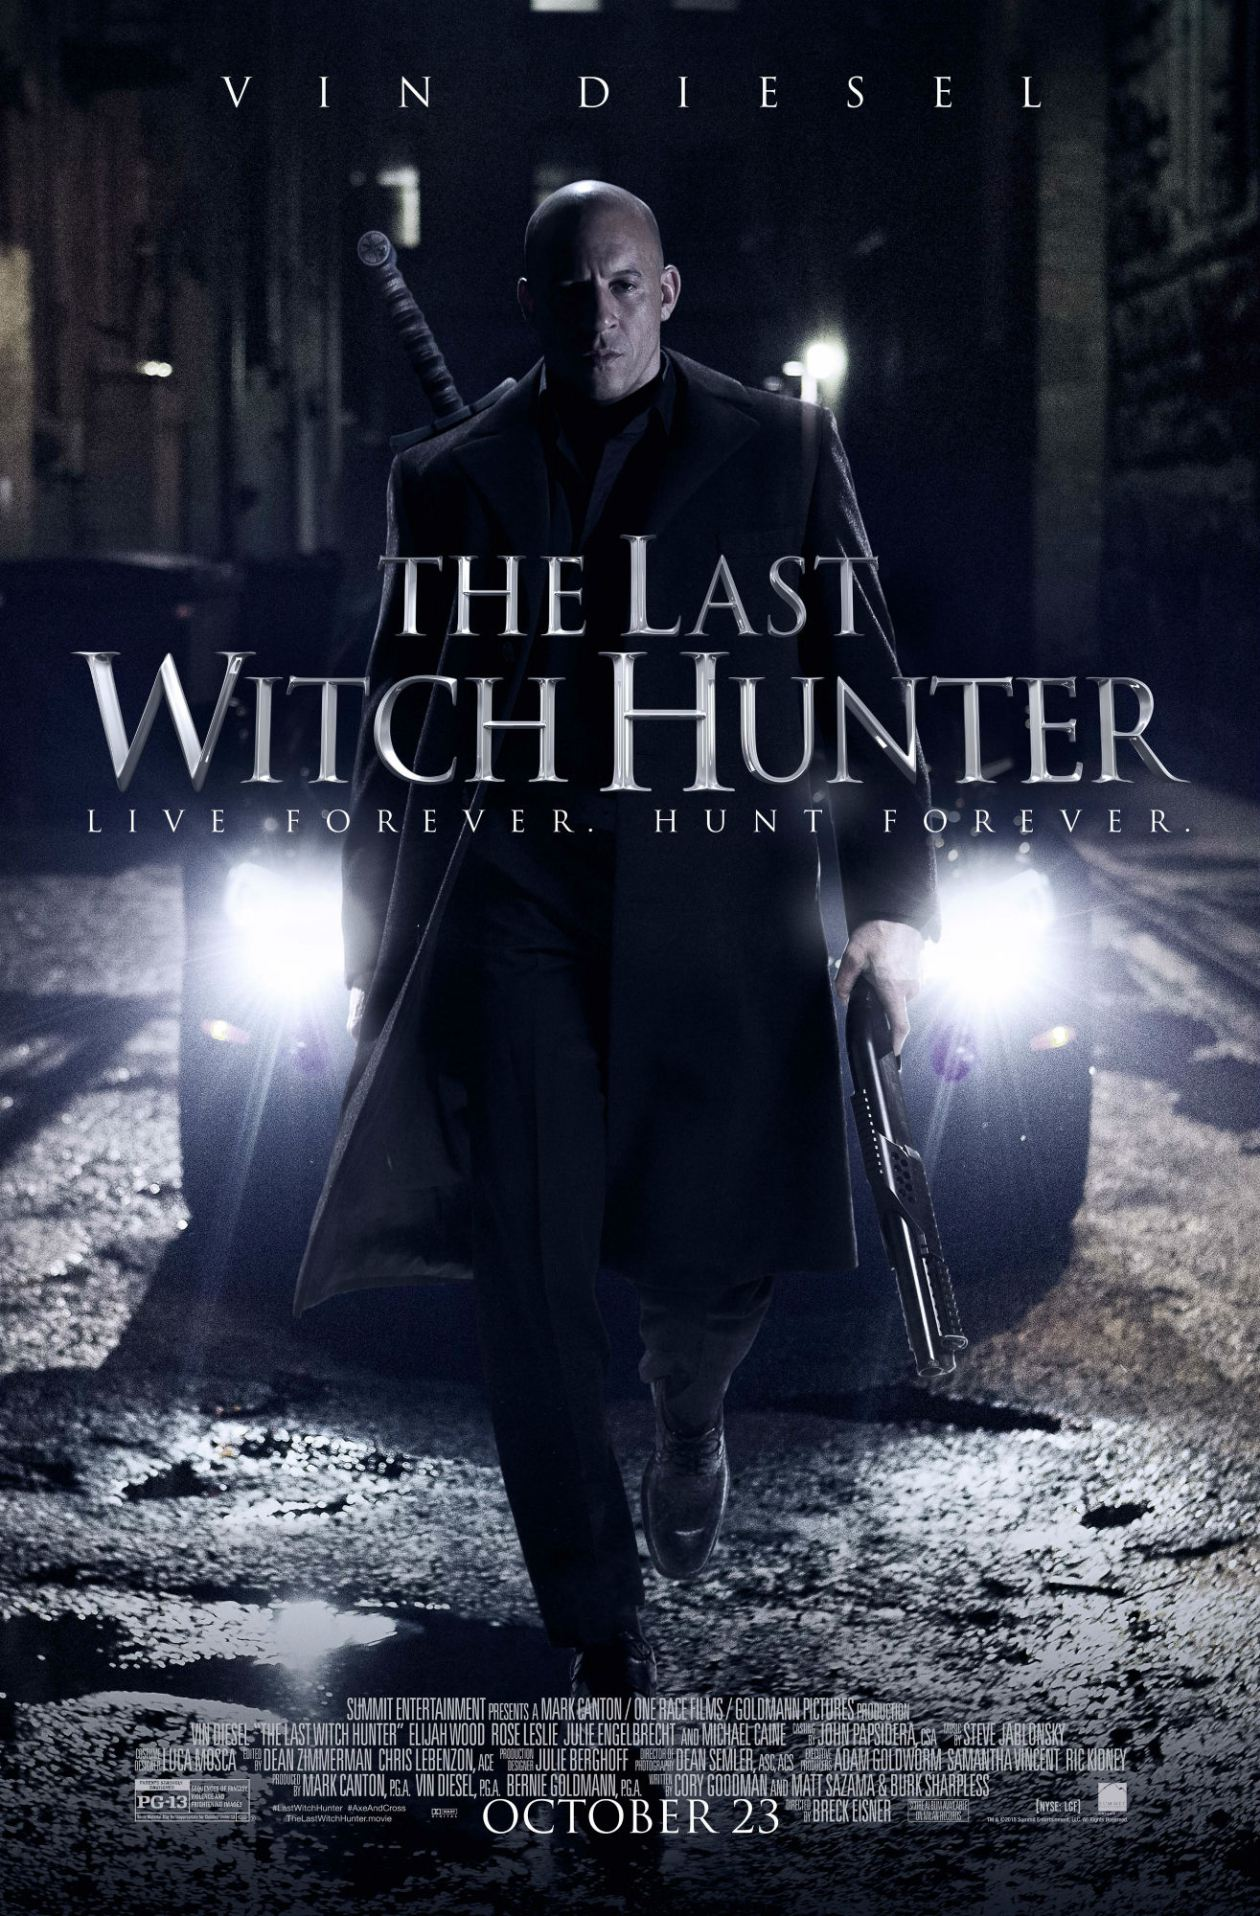 The Witchhunter